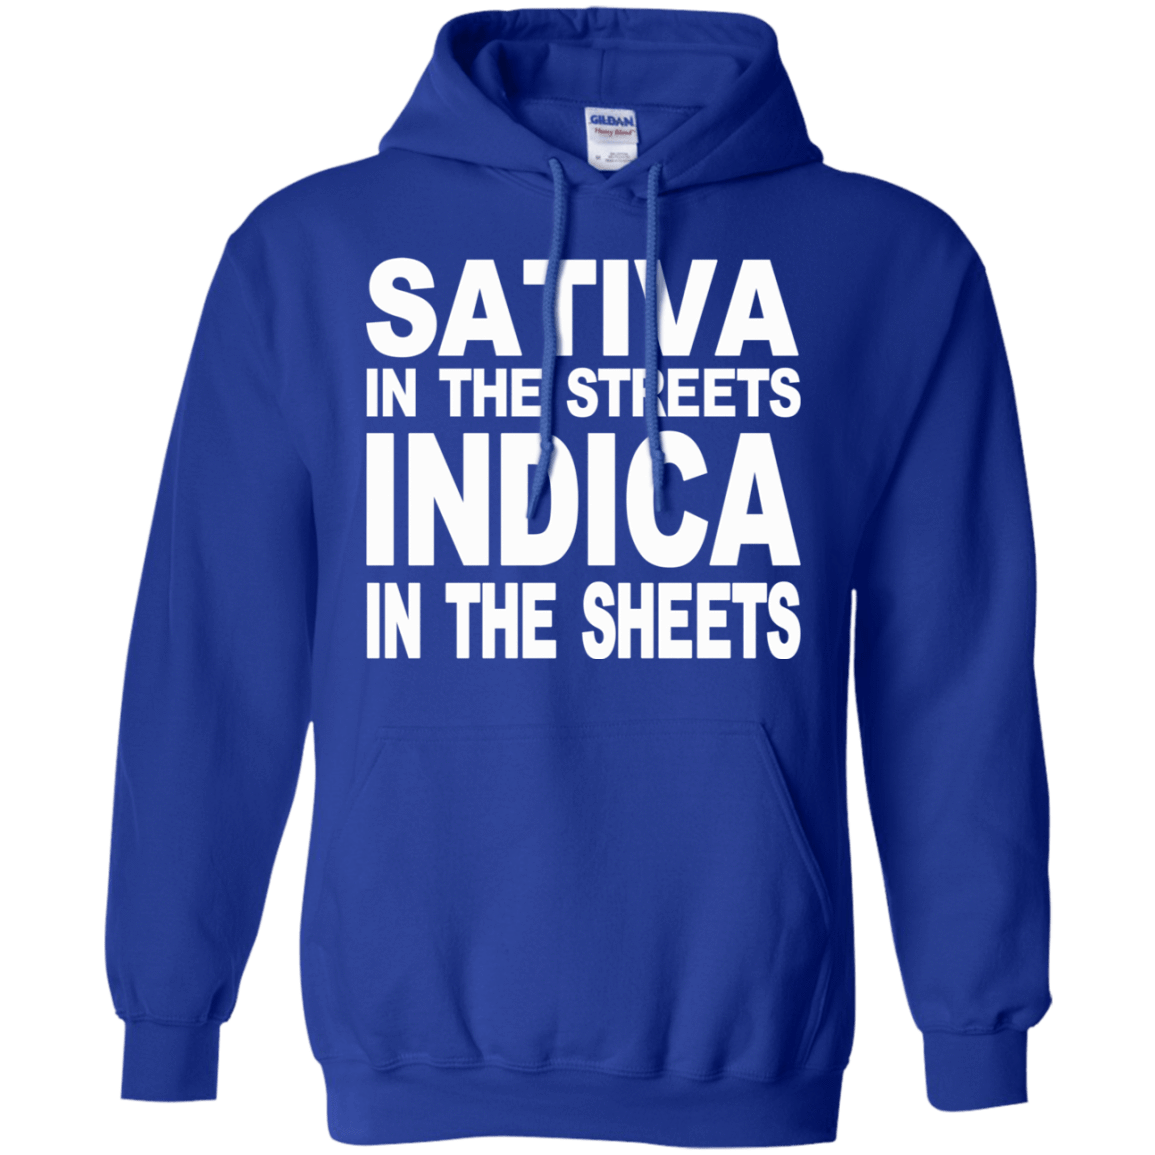 Sativa In The Streets Indica In The Sheets 541-4765-74096117-23175 - Tee Ript